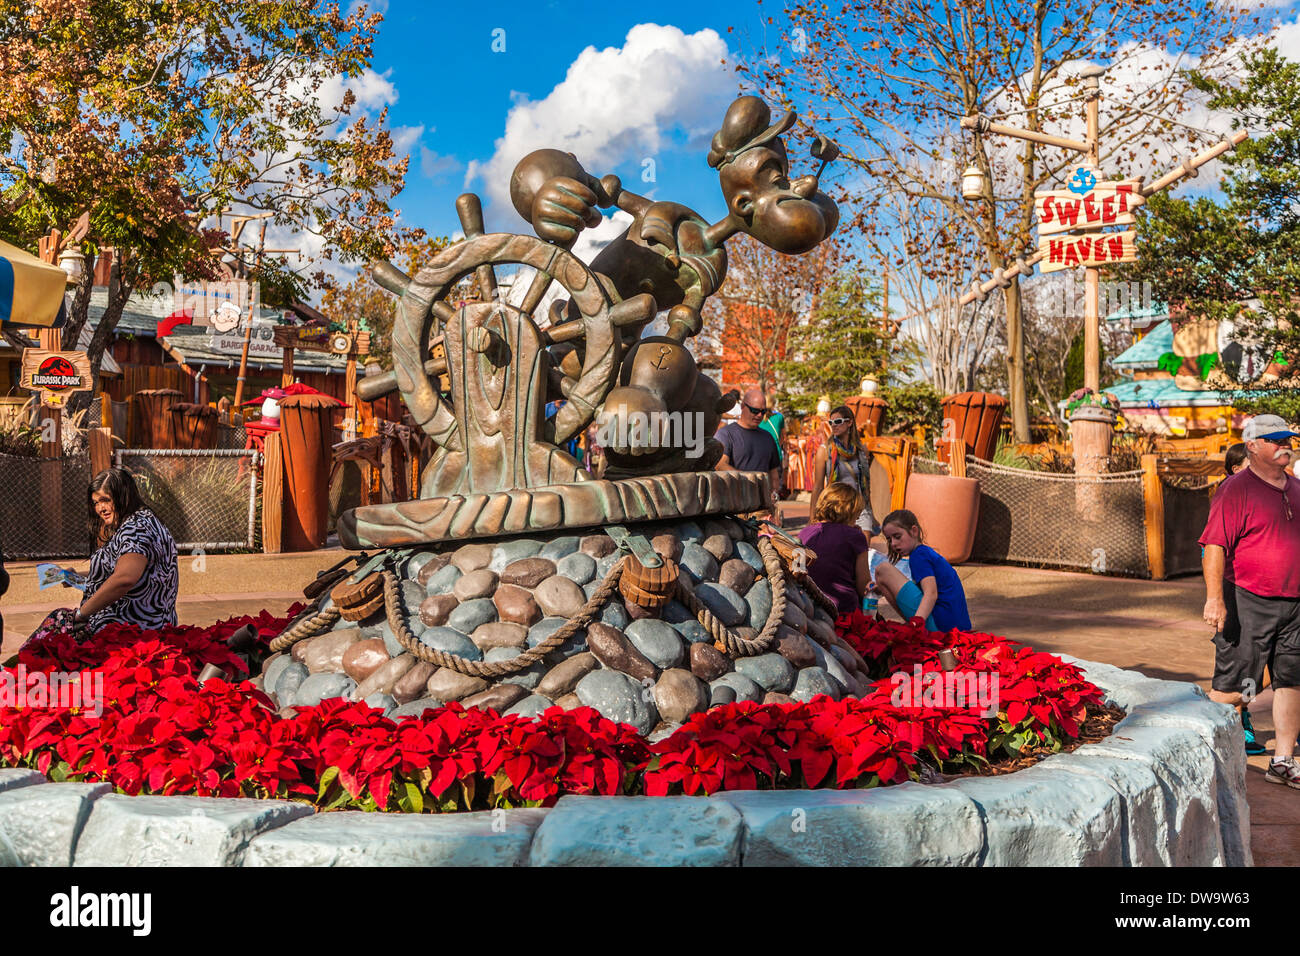 Park guests rest at base of Popeye statue in Toon Lagoon at Universal Studios Islands of Adventure in Orlando, Florida - Stock Image